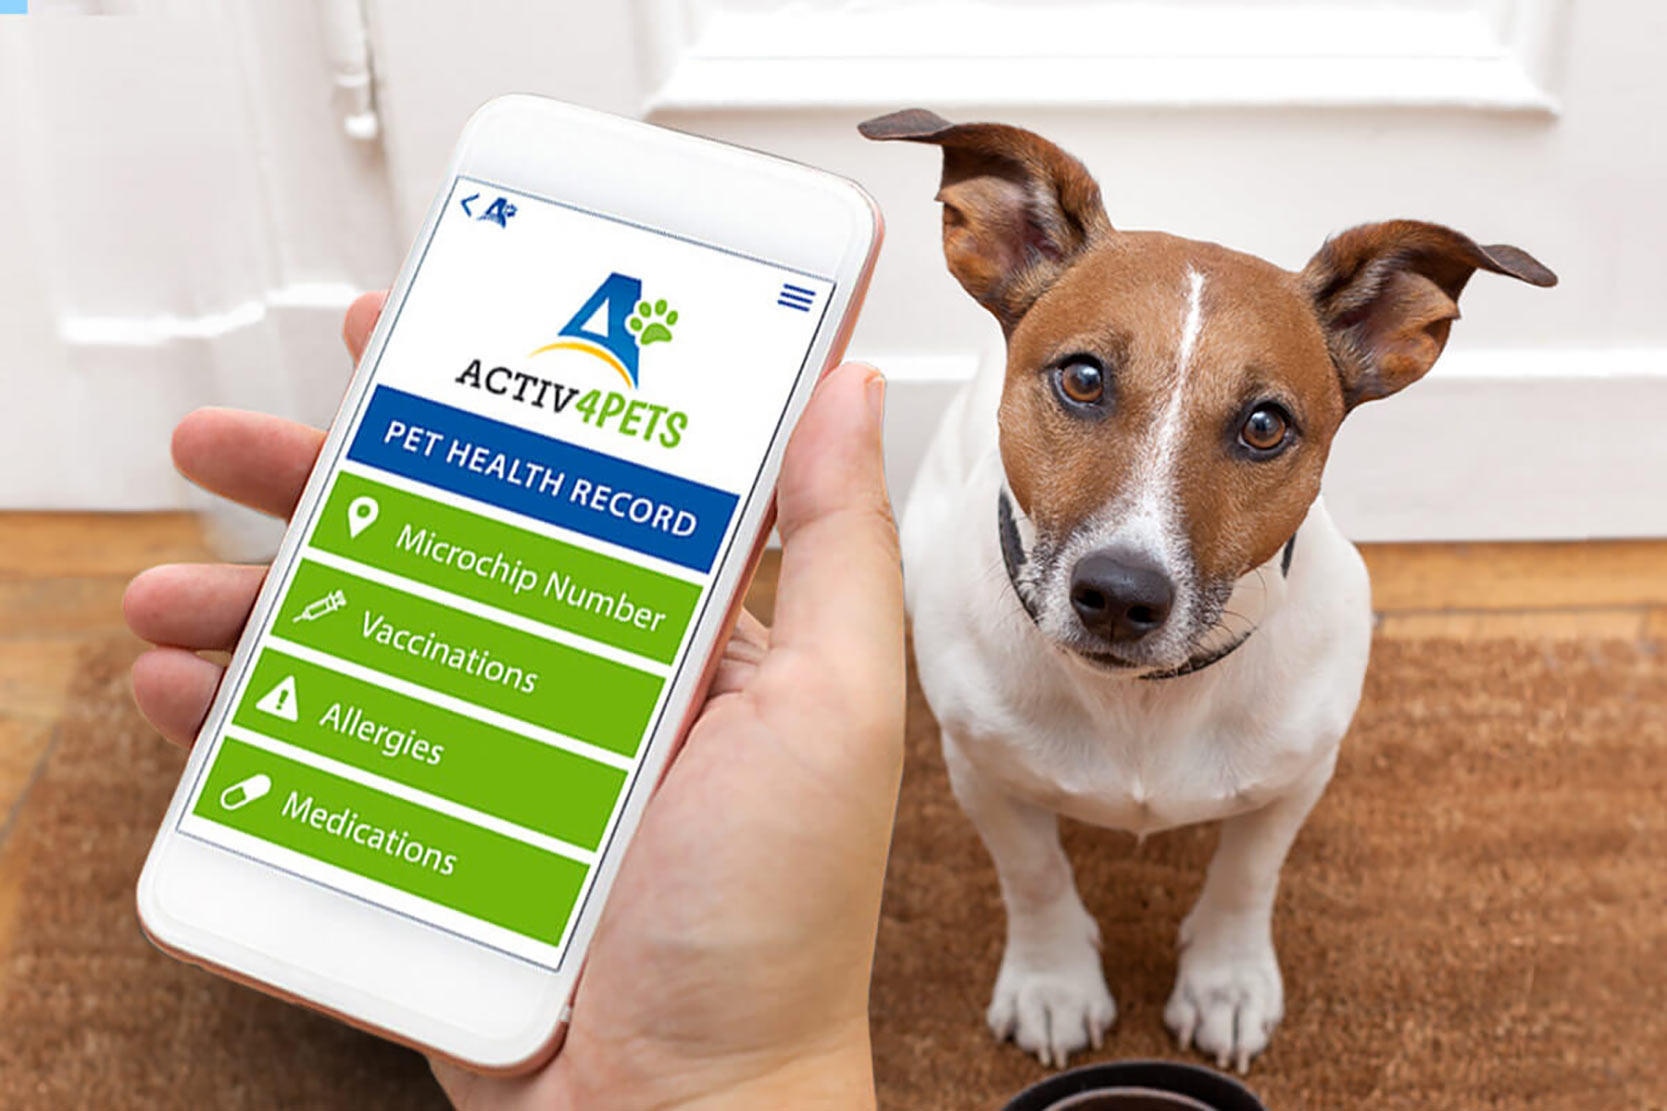 Upload your pet's medical records